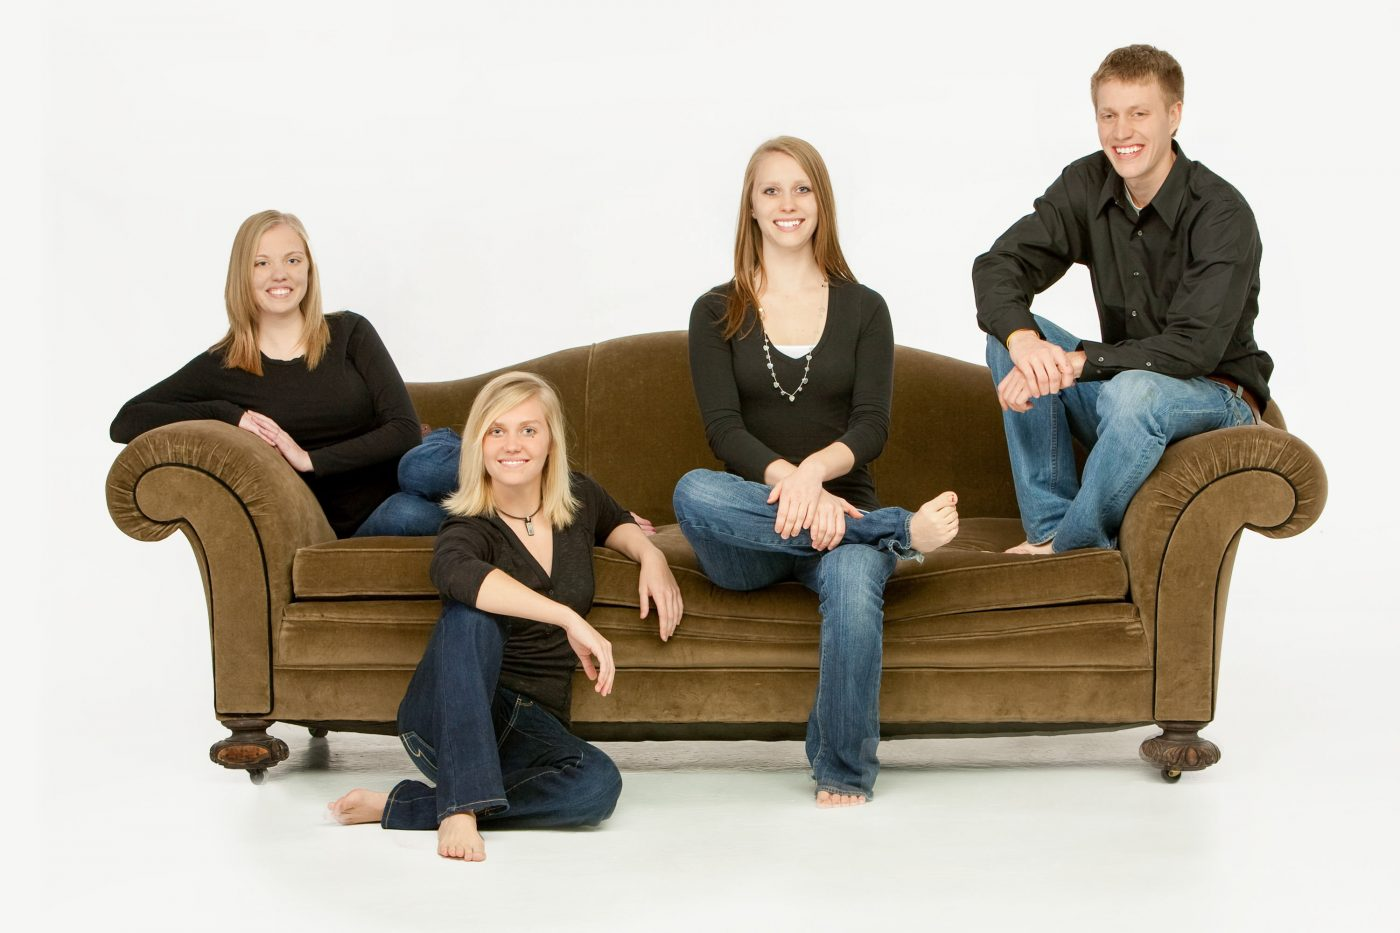 4 sibs on a couch playing musical chairs